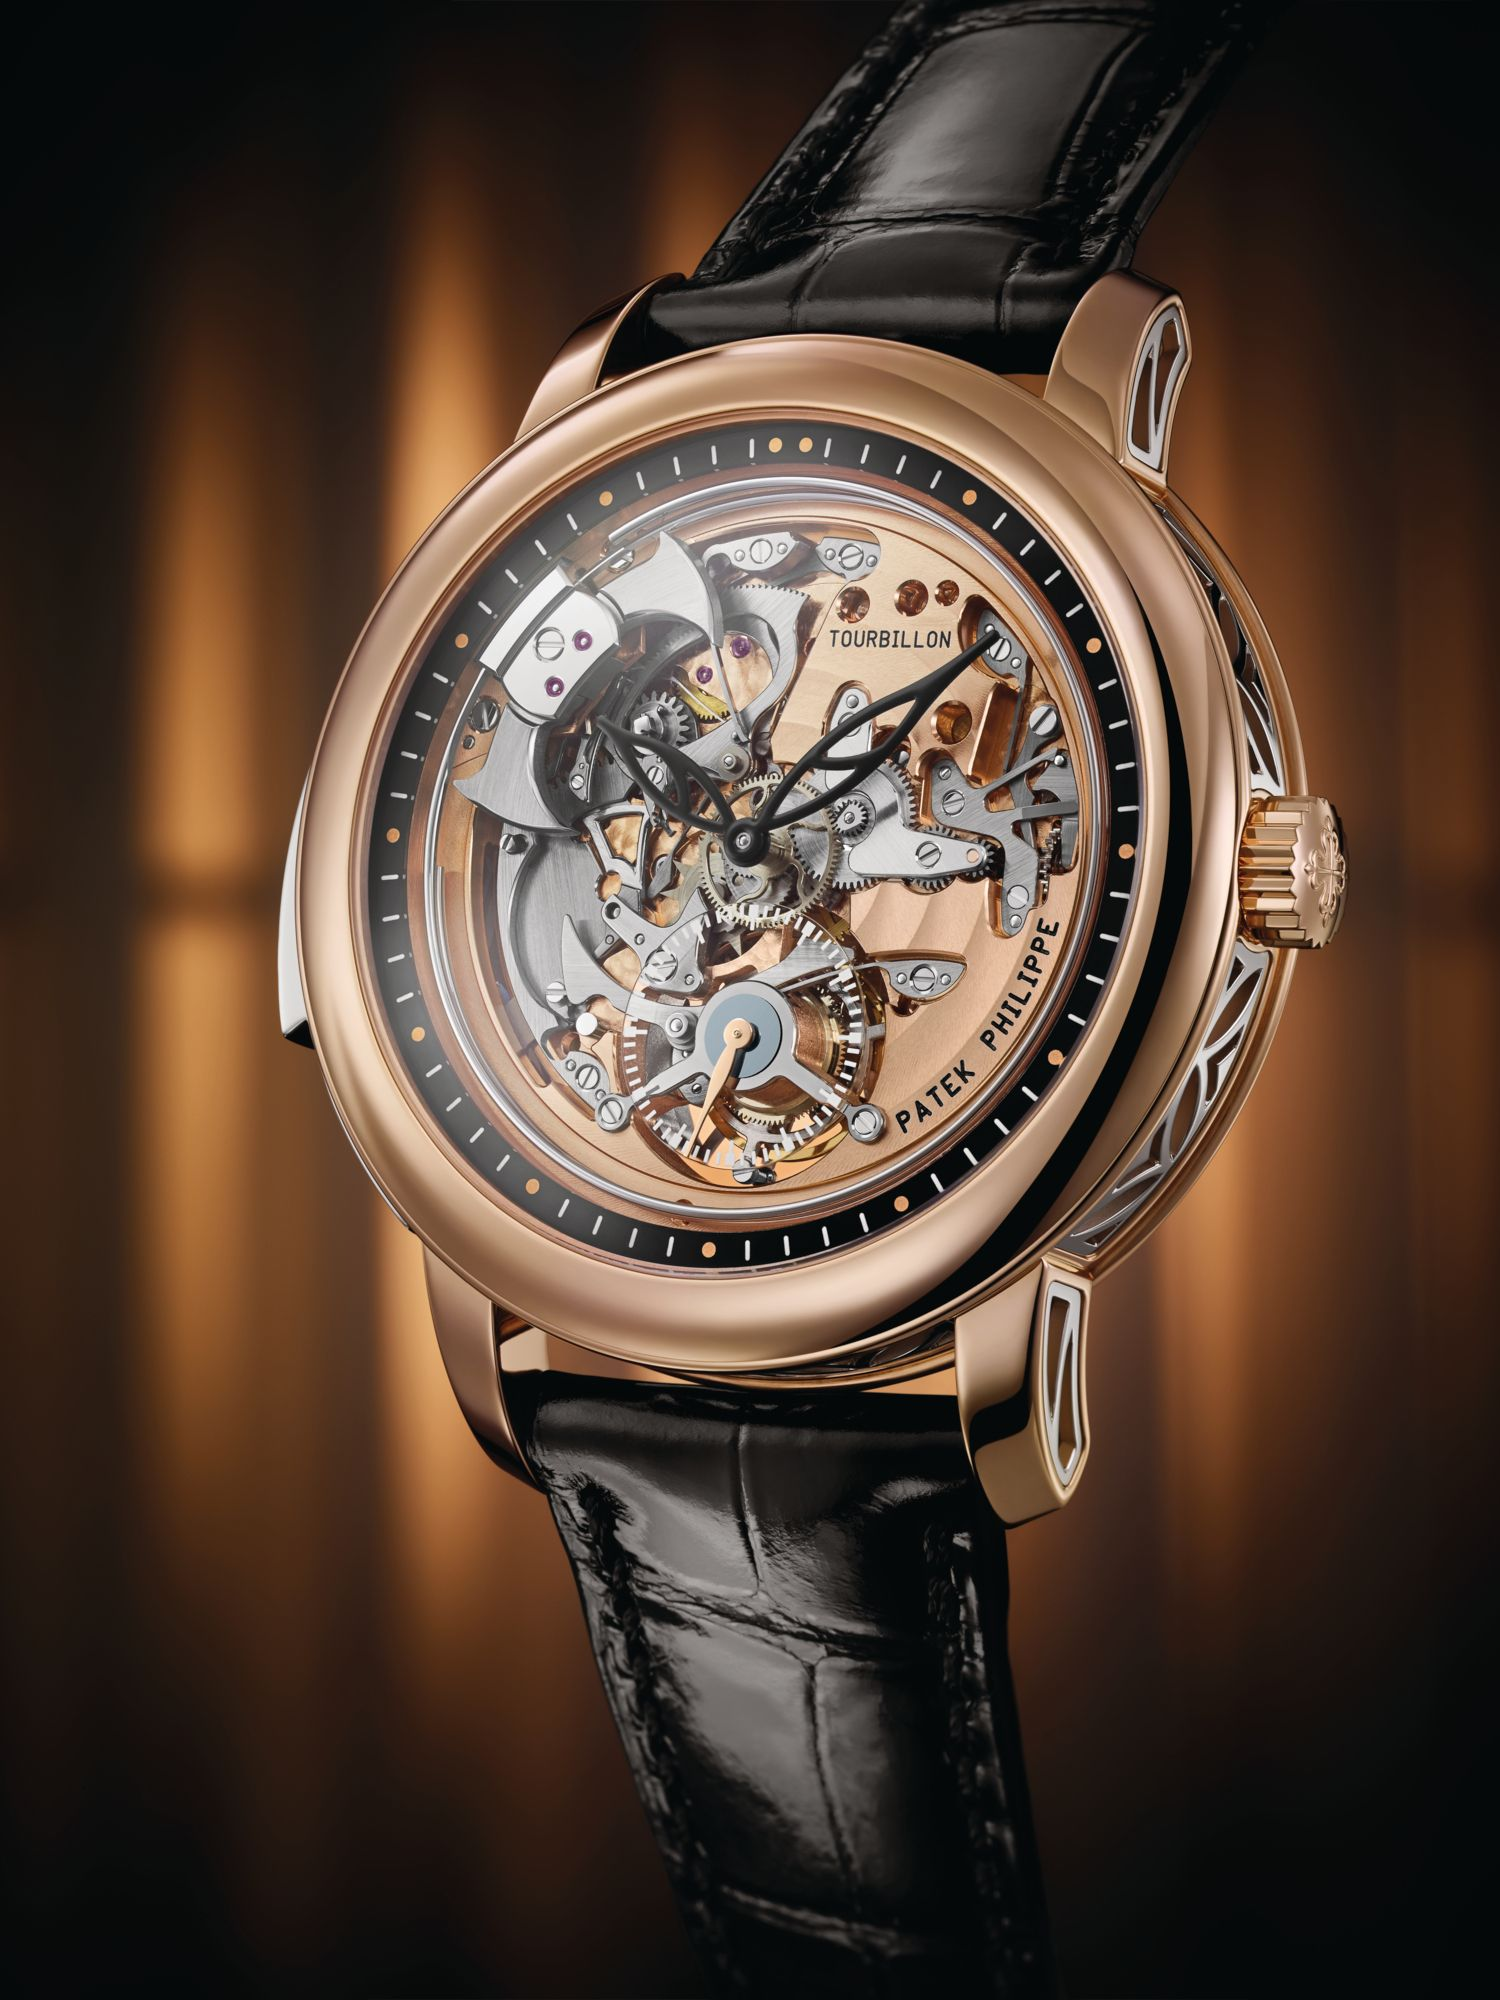 November 2020: What's New In Watches